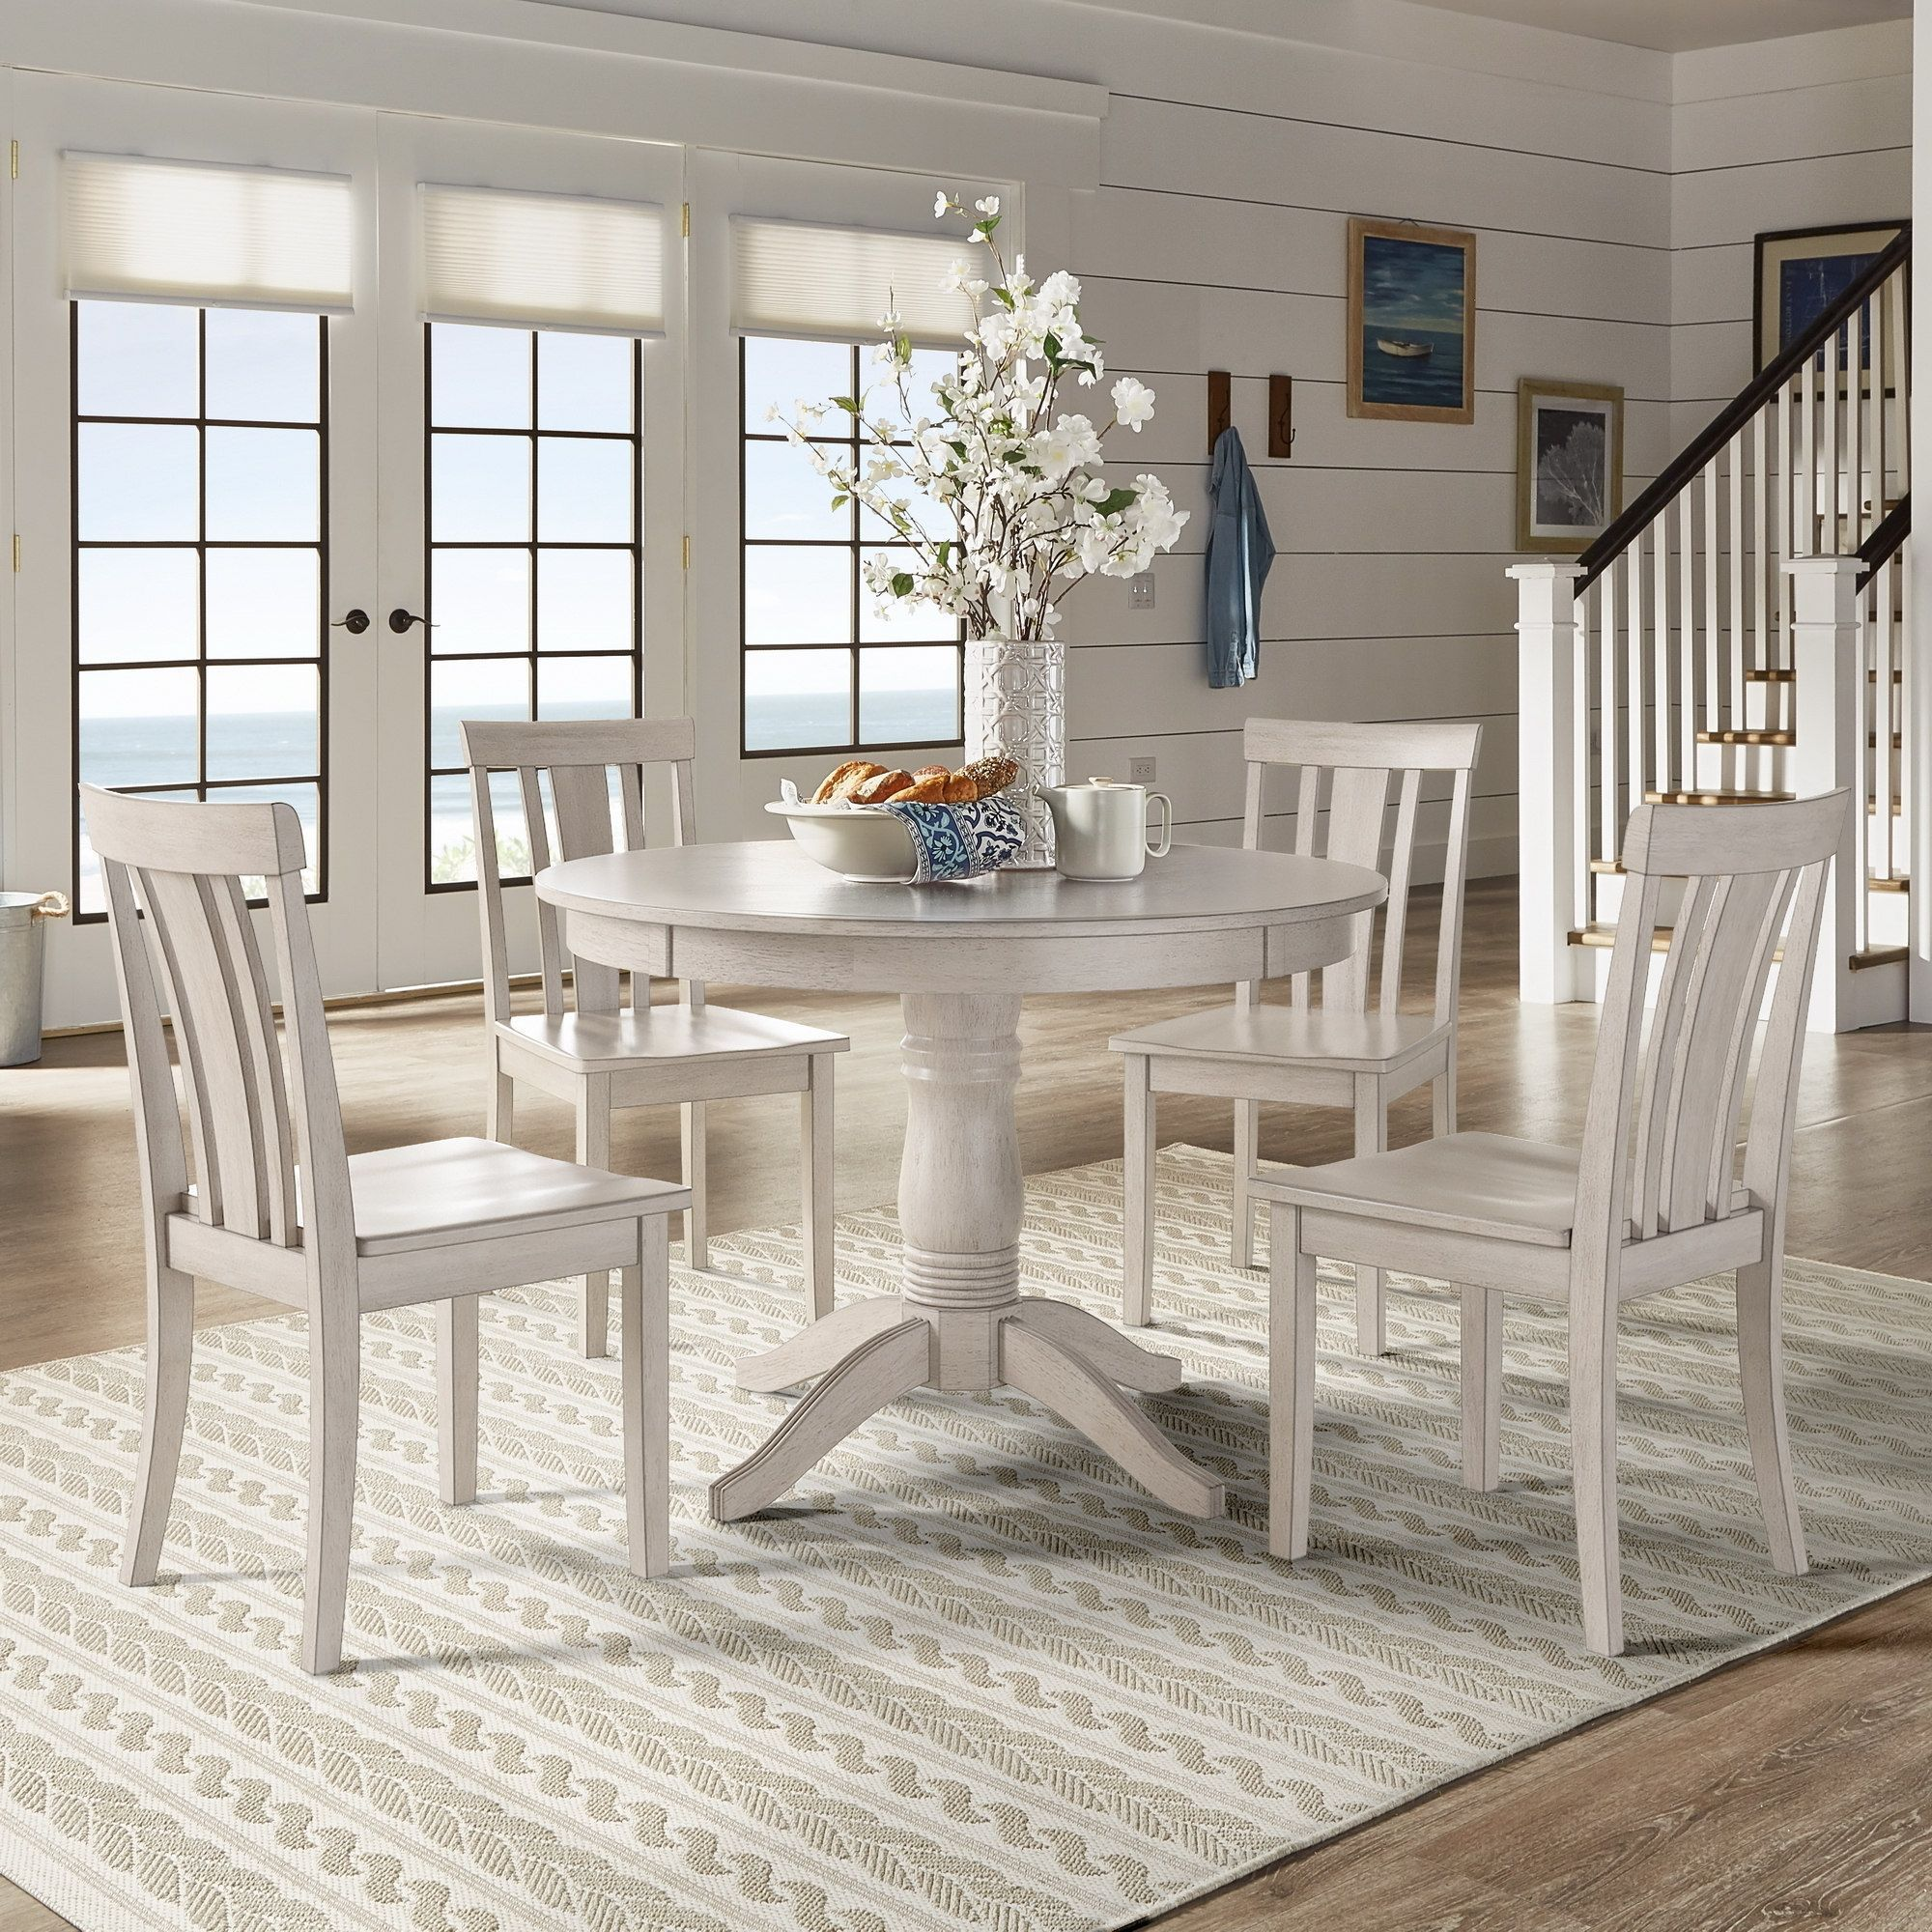 Wilmington II Round Pedestal Base Antique White 5 Piece Dining Set By  INSPIRE Q Classic (Mission Back Chairs), Beige Off White, Size 5 Piece Sets